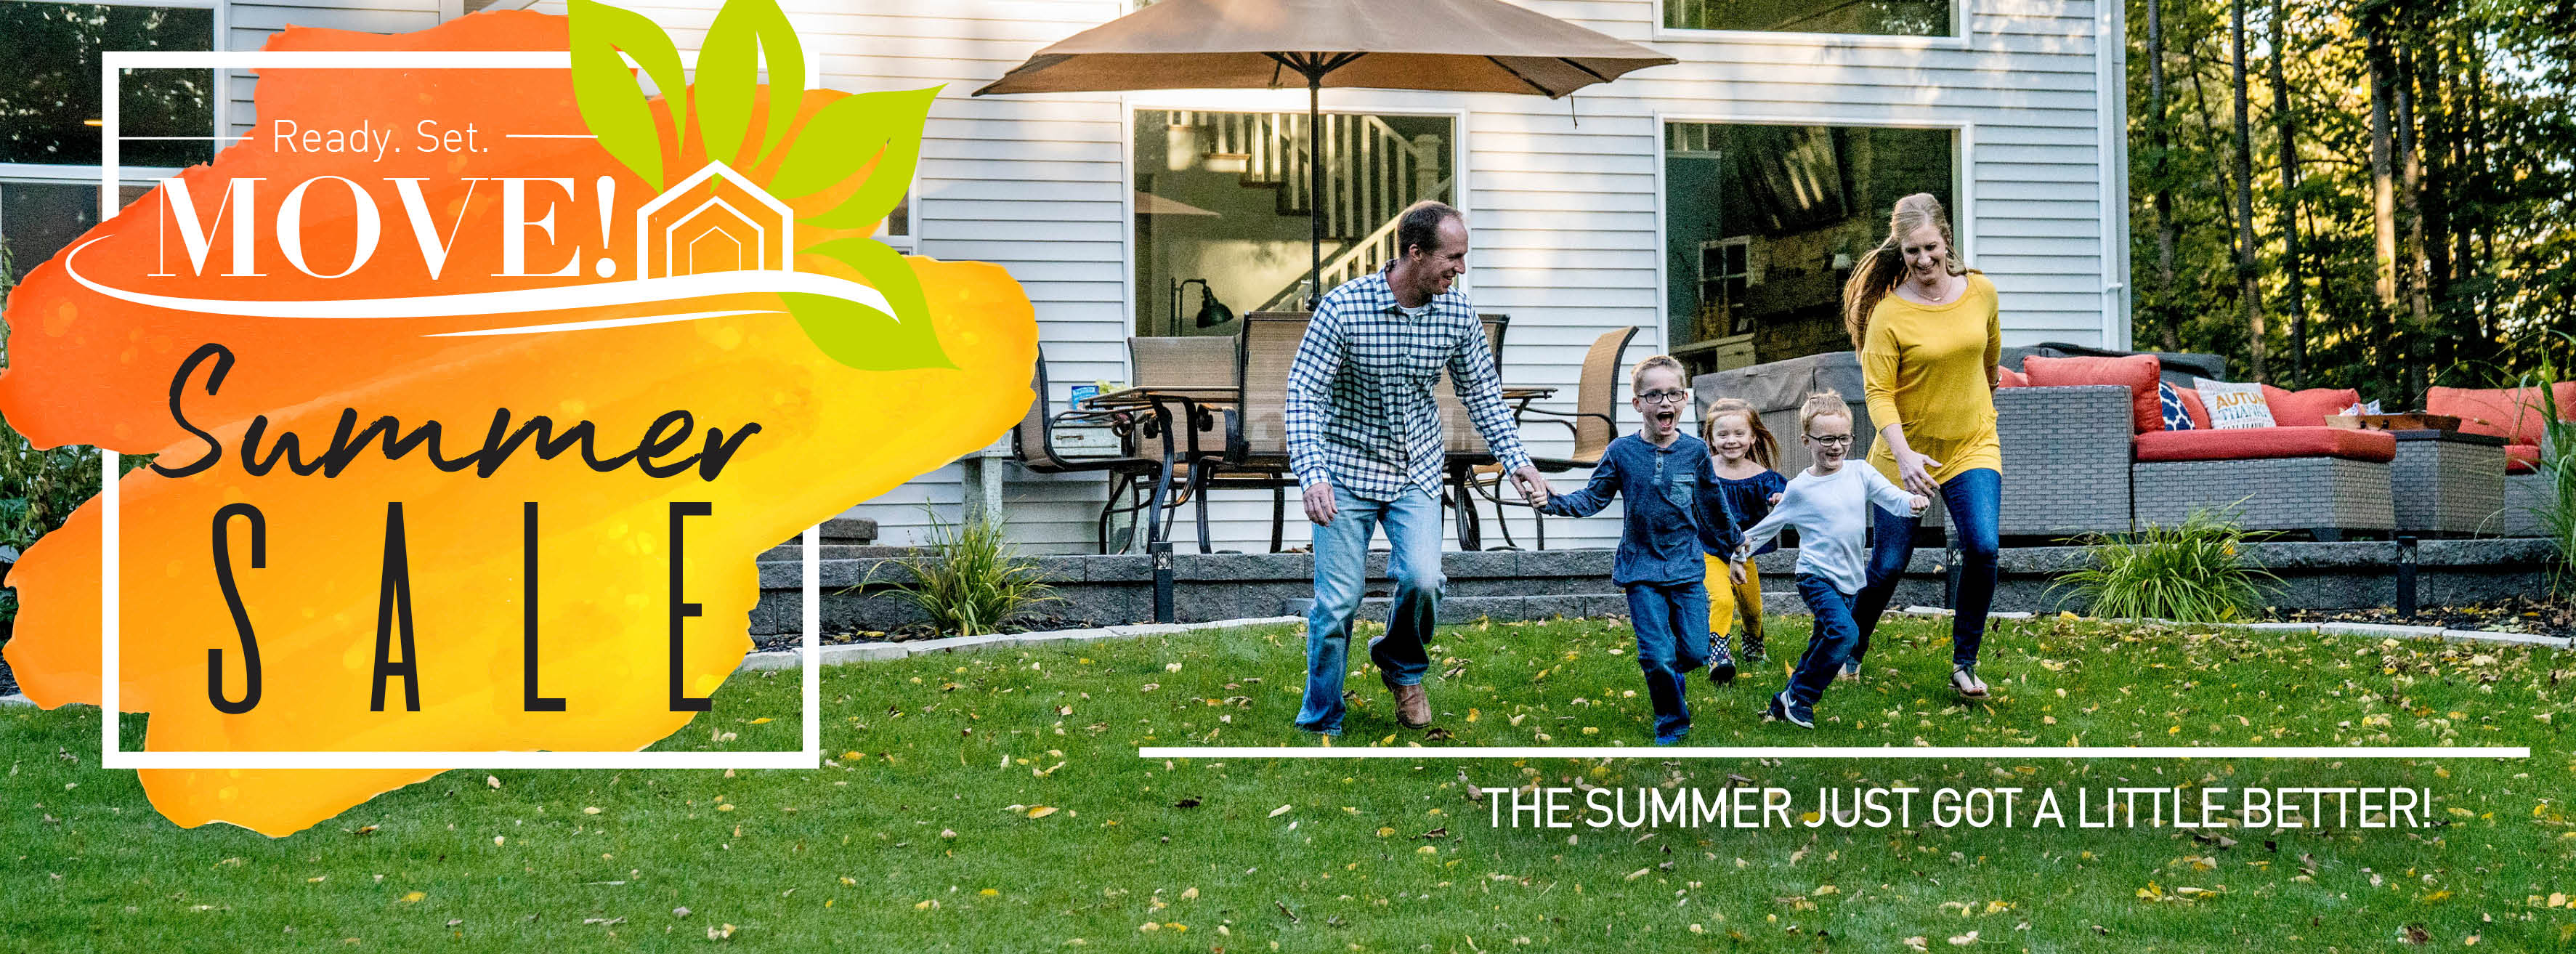 Summer Savings with Heritage Homes